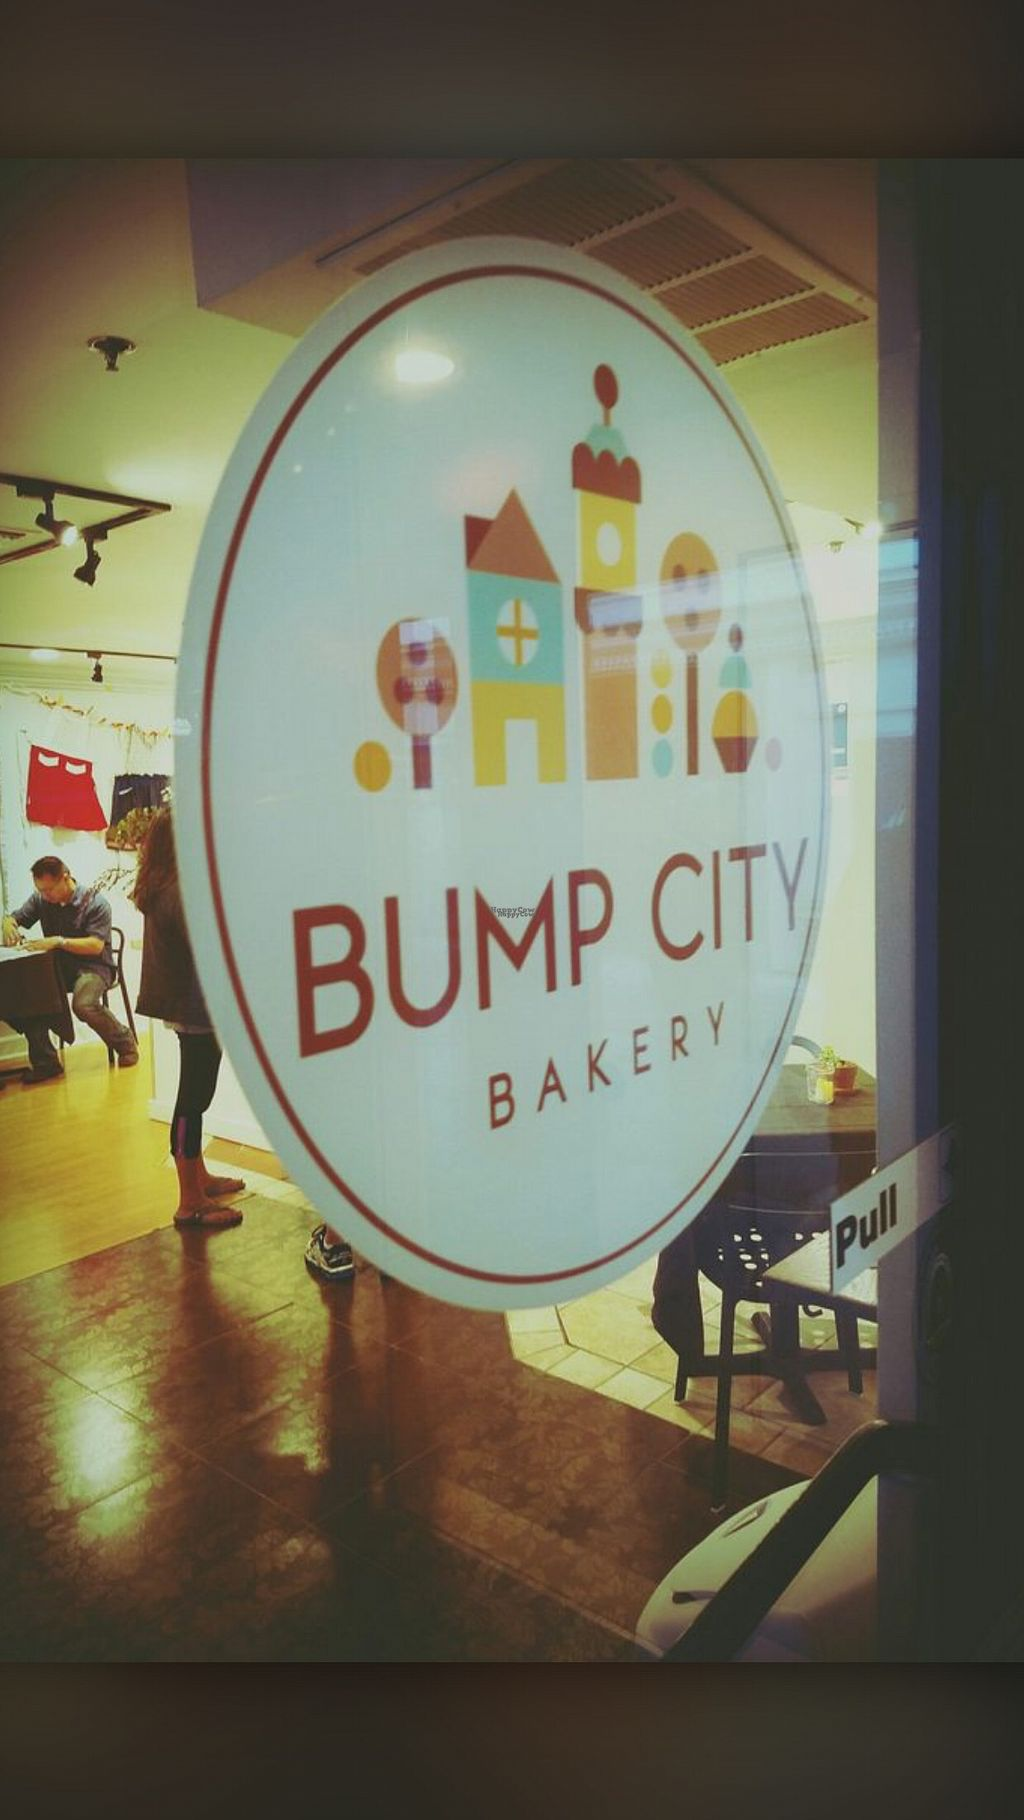 """Photo of Bump City Bakery  by <a href=""""/members/profile/Forman"""">Forman</a> <br/>front of building <br/> October 15, 2016  - <a href='/contact/abuse/image/81468/182271'>Report</a>"""